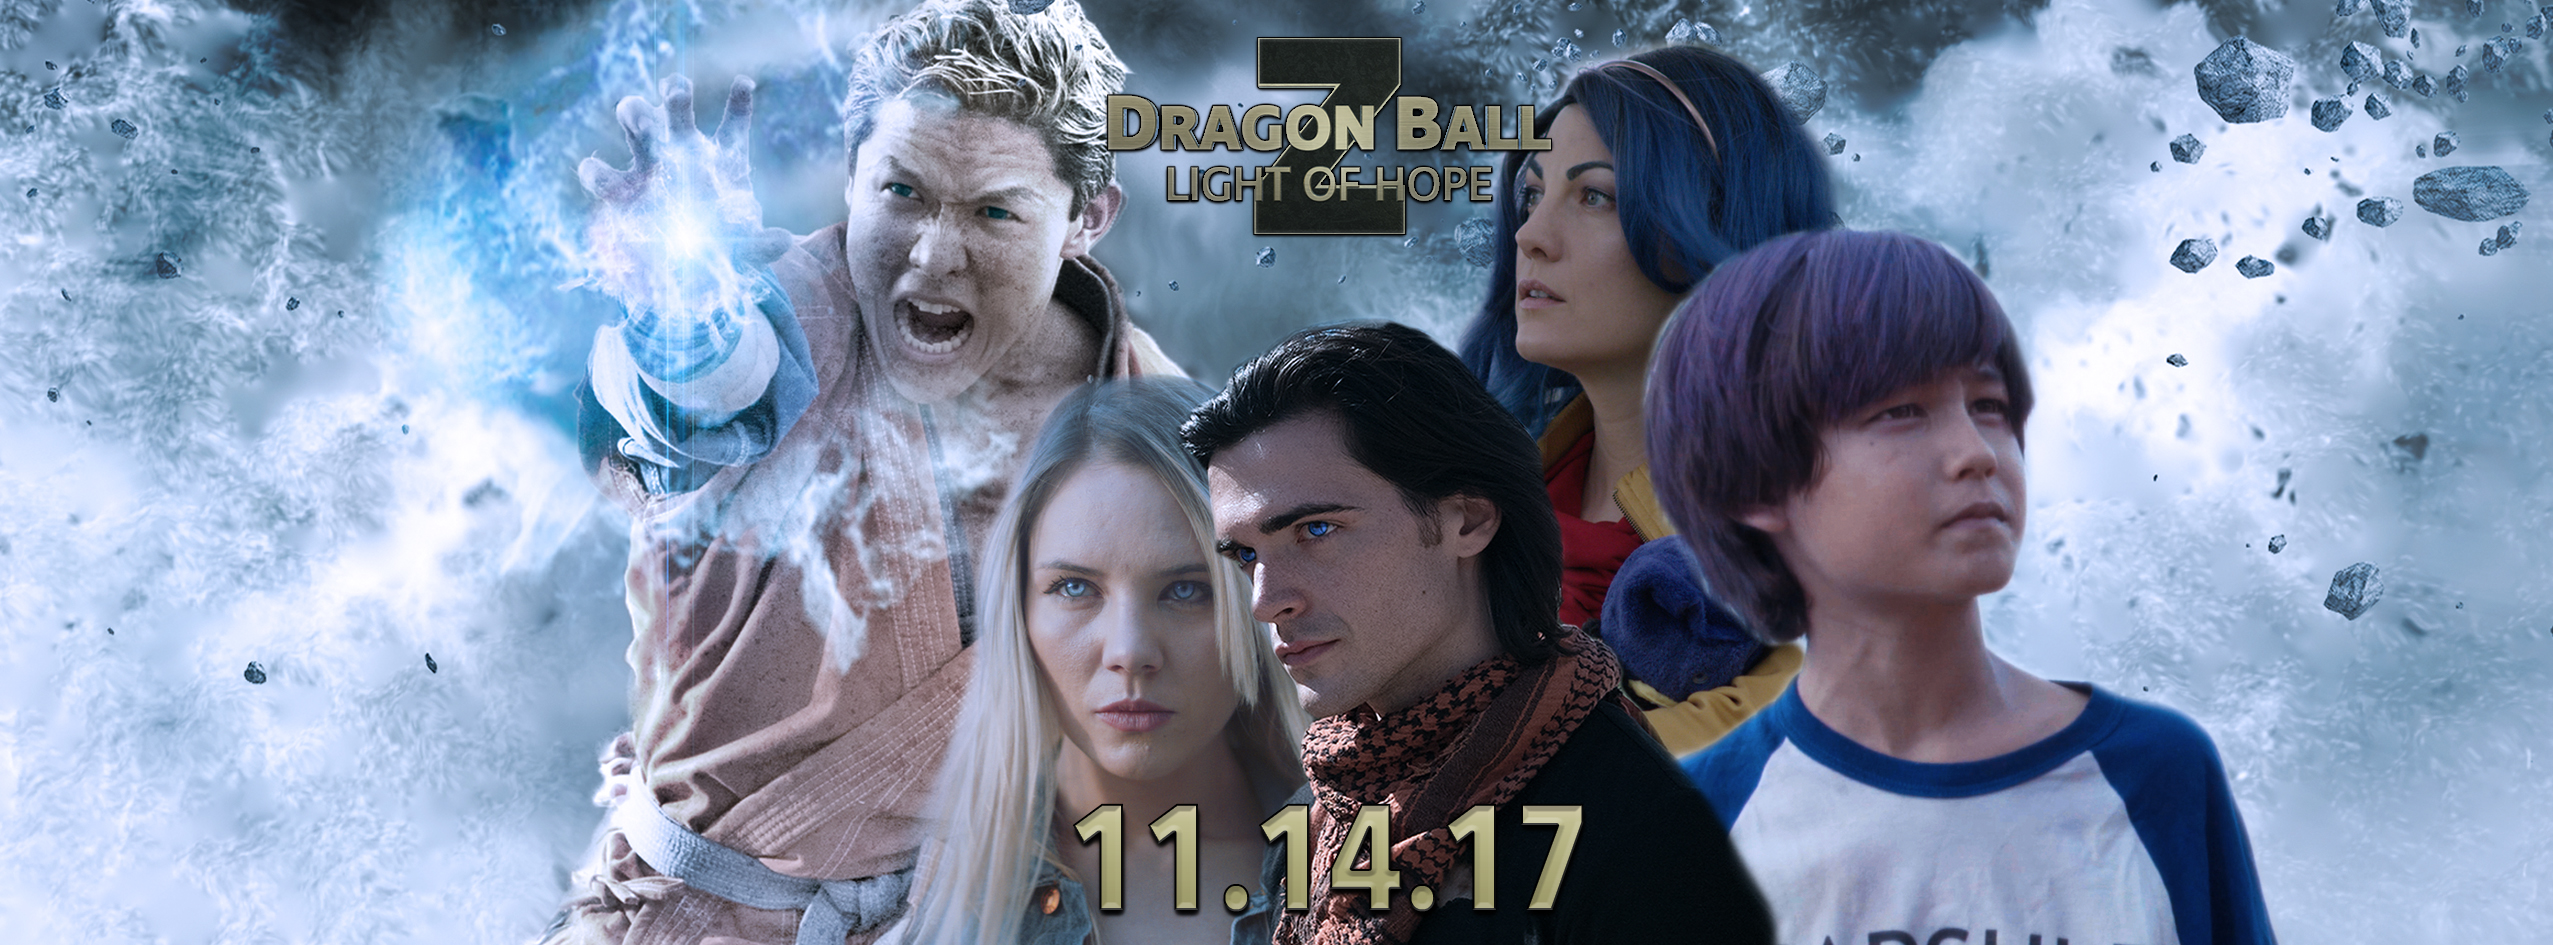 Pullbox Preview Dragonball Z Light Of Hope Fan Film The Pullbox